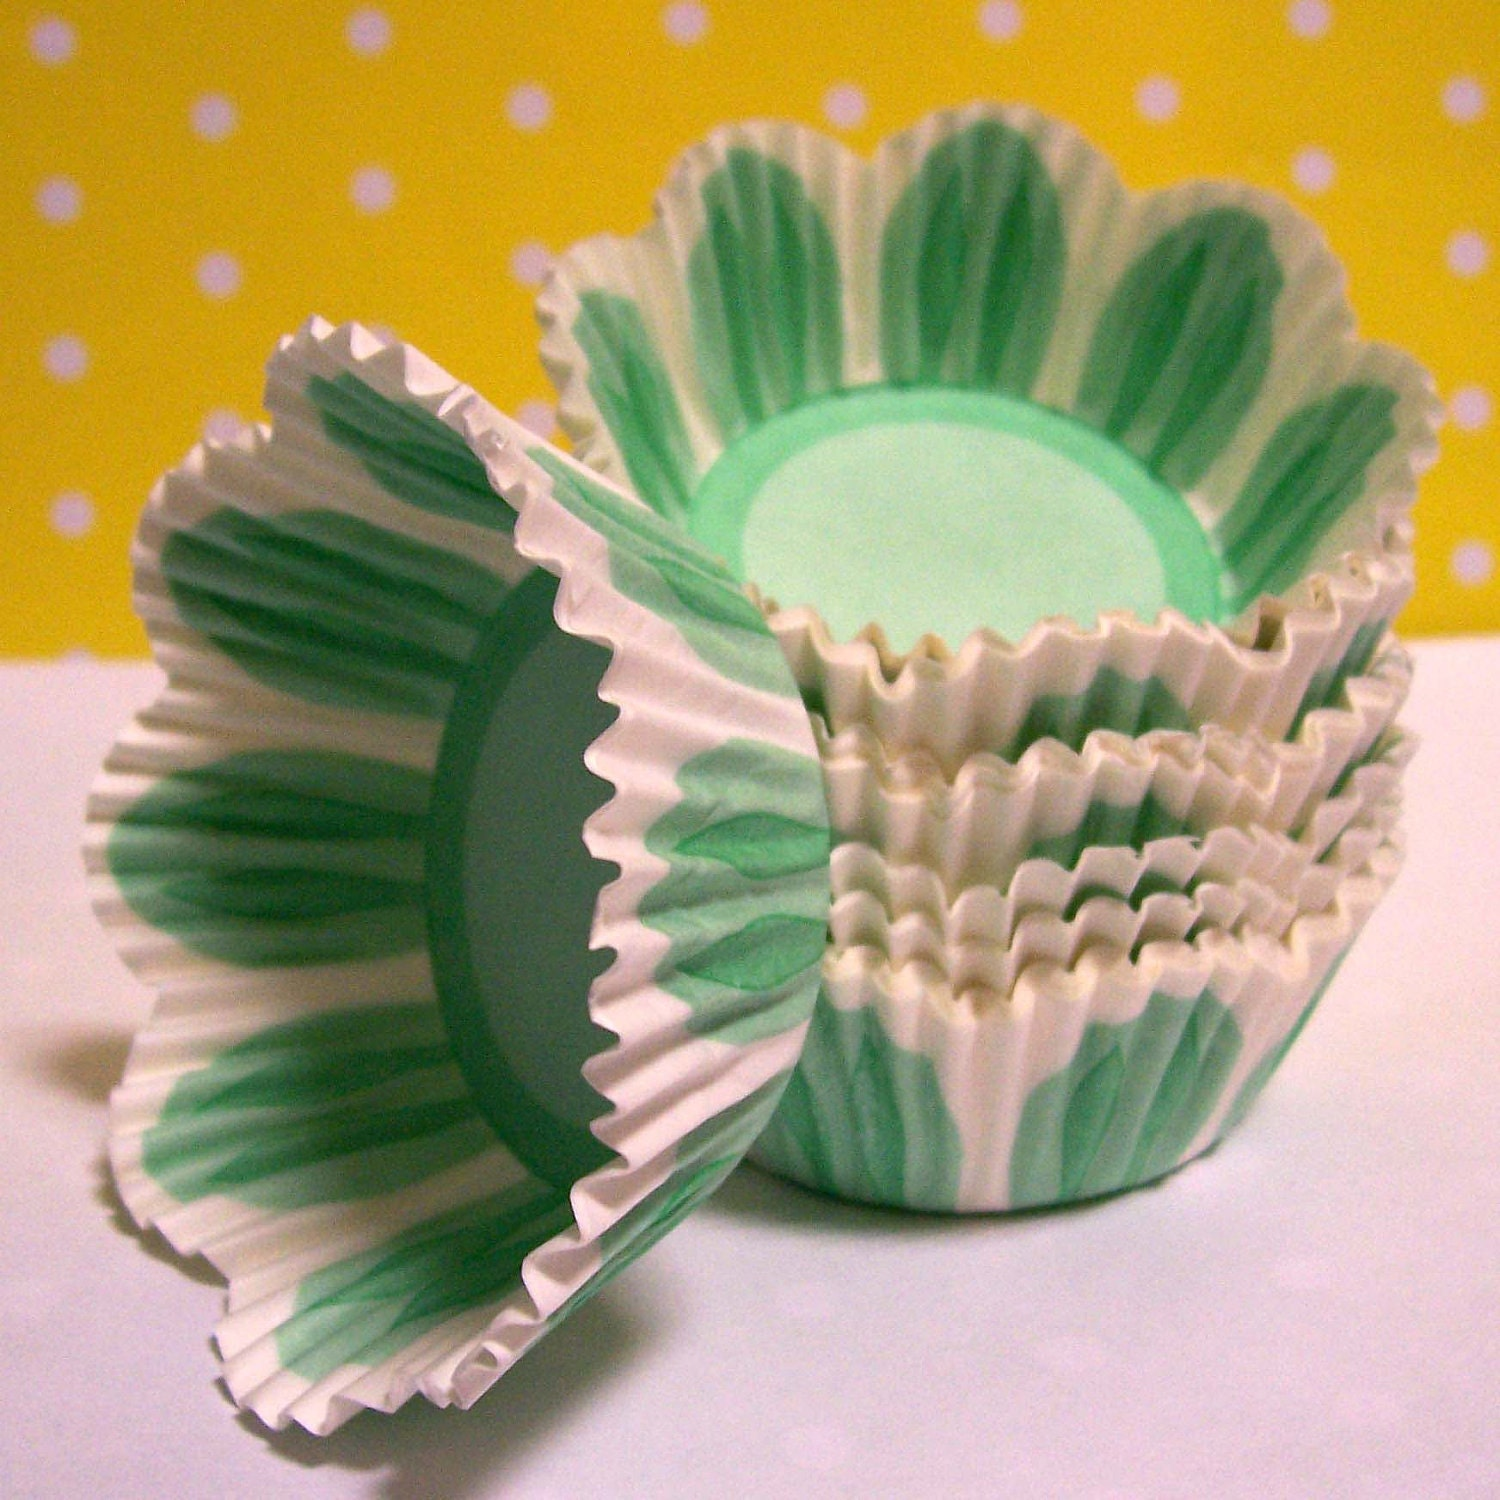 Tulip Cupcake Wrappers Oulii 50pcs Cupcake Wrappers